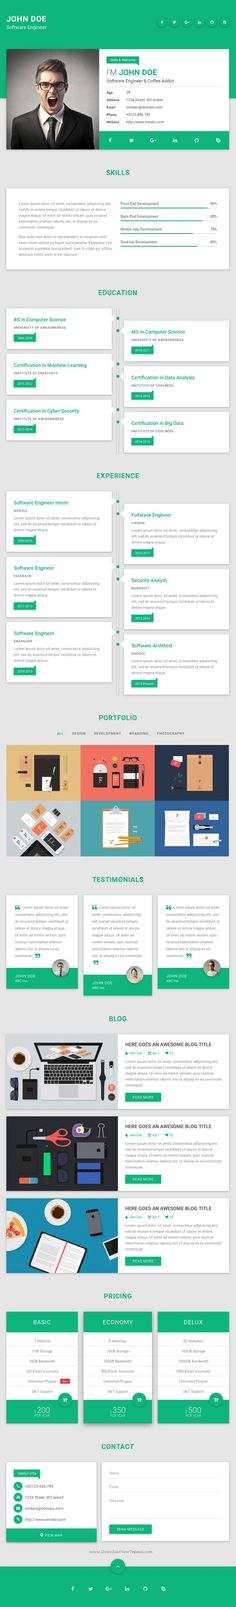 Flatrica Material CV\/Resume Resume cv, Online resume and - personal resume website template